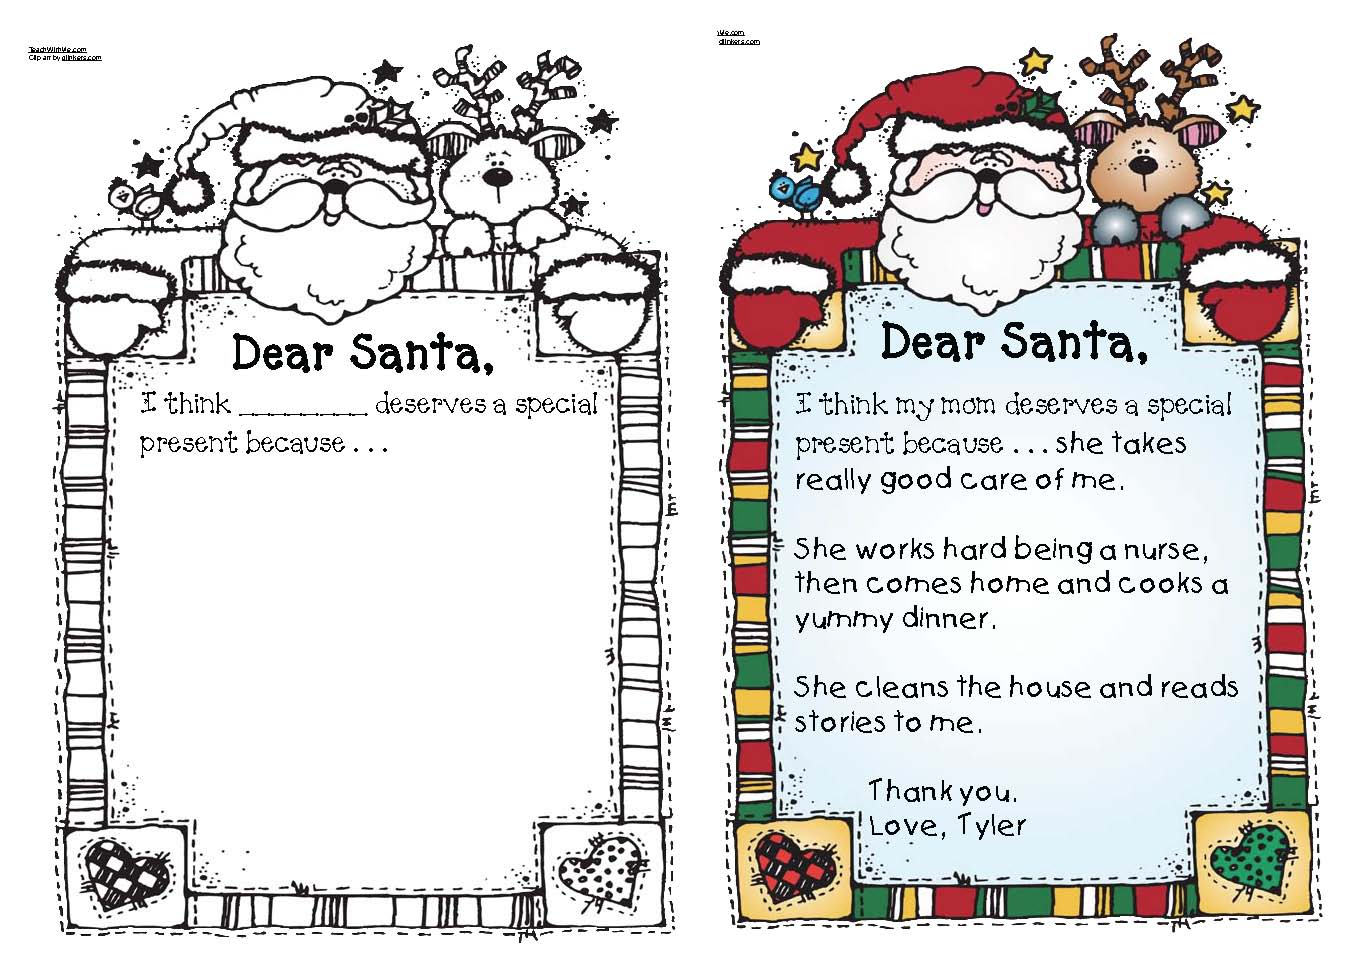 creative writing prompts for Christmas, writing prompts for december, december bulletin board ideas, dear santa letter, spin a Christmas story, writing games and activities for winter